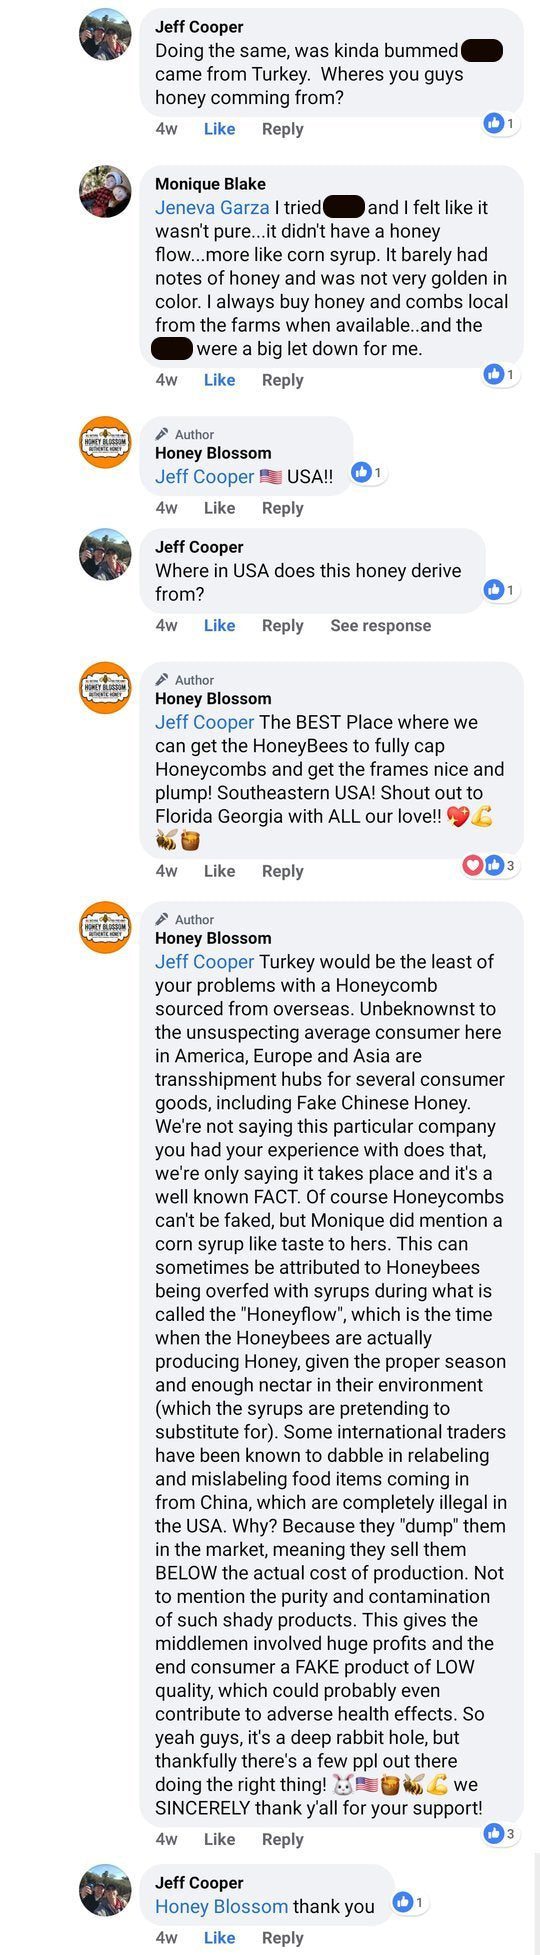 """Screenshot of 3 people's post on our facebook that says: """"Doing the same, was kinda bummed ... came from turkey. Where you guys honey comming from?"""" """"I tried ... and I felt like it wasn't pure... It didn't have a honey flow.. more like corn syrup...."""""""